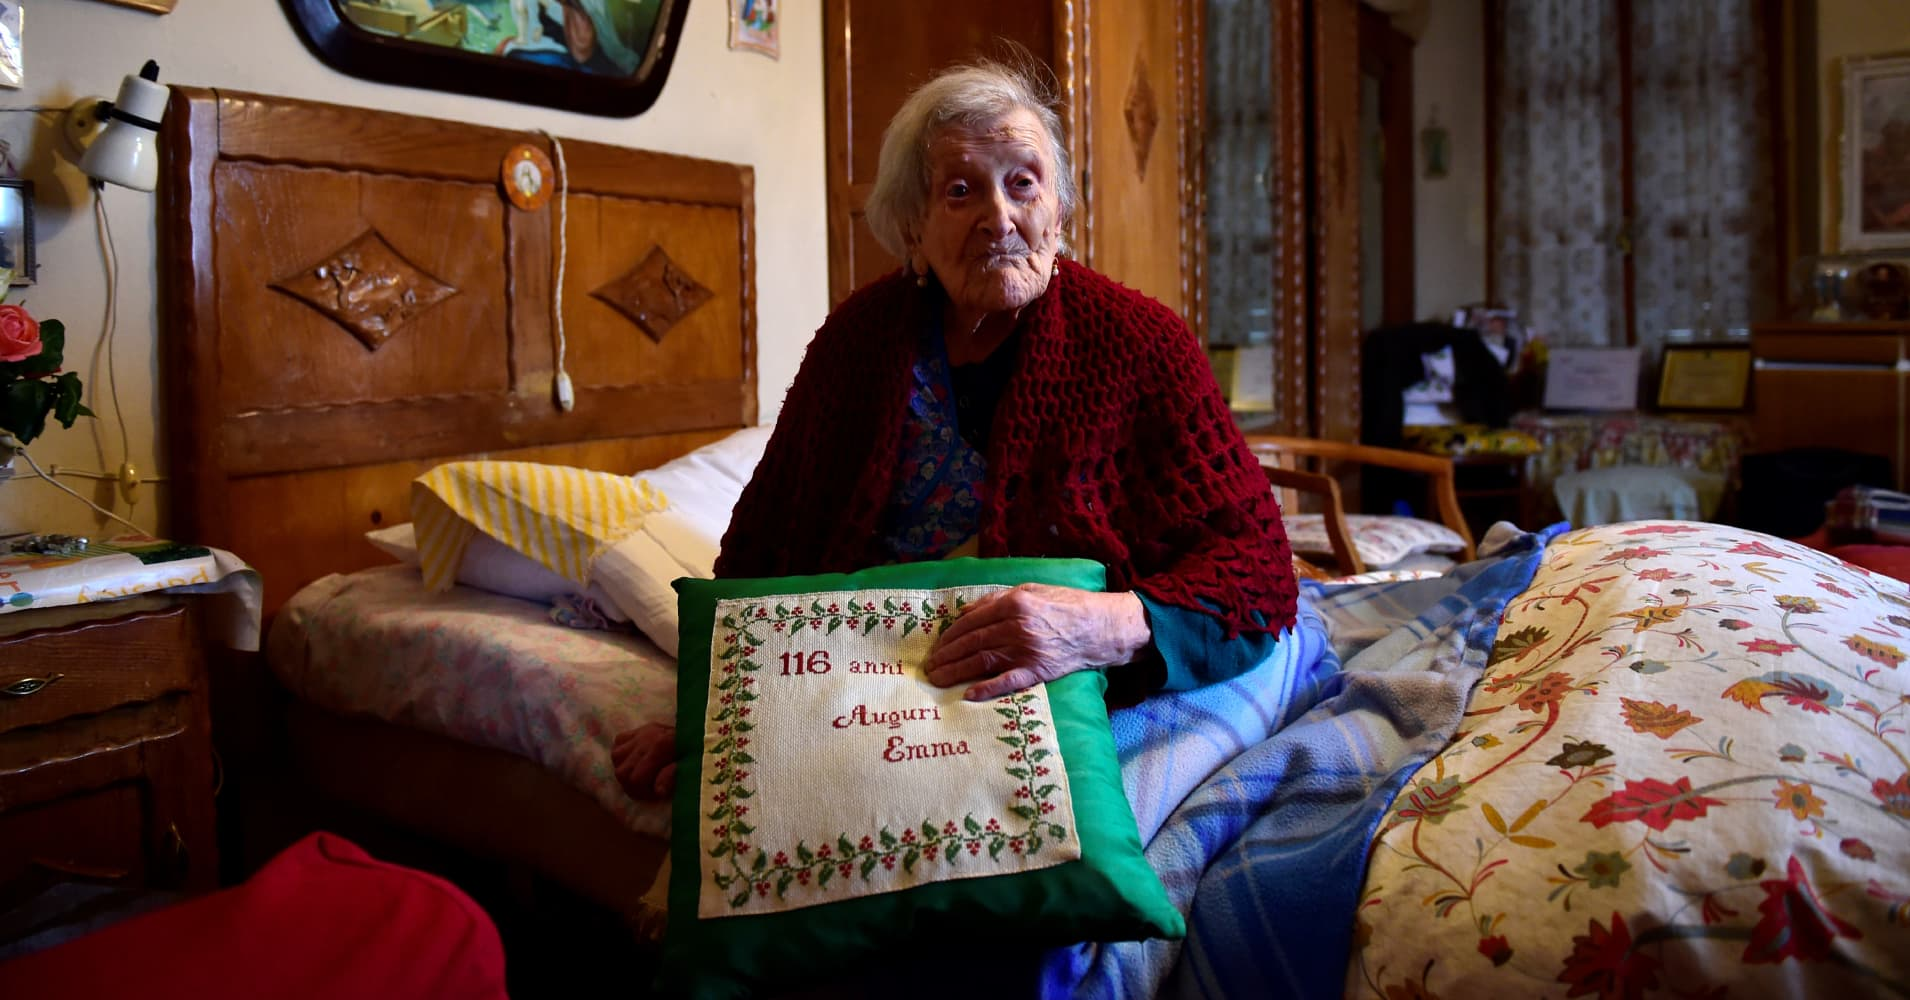 Emma Morano is the oldest living person in the world.